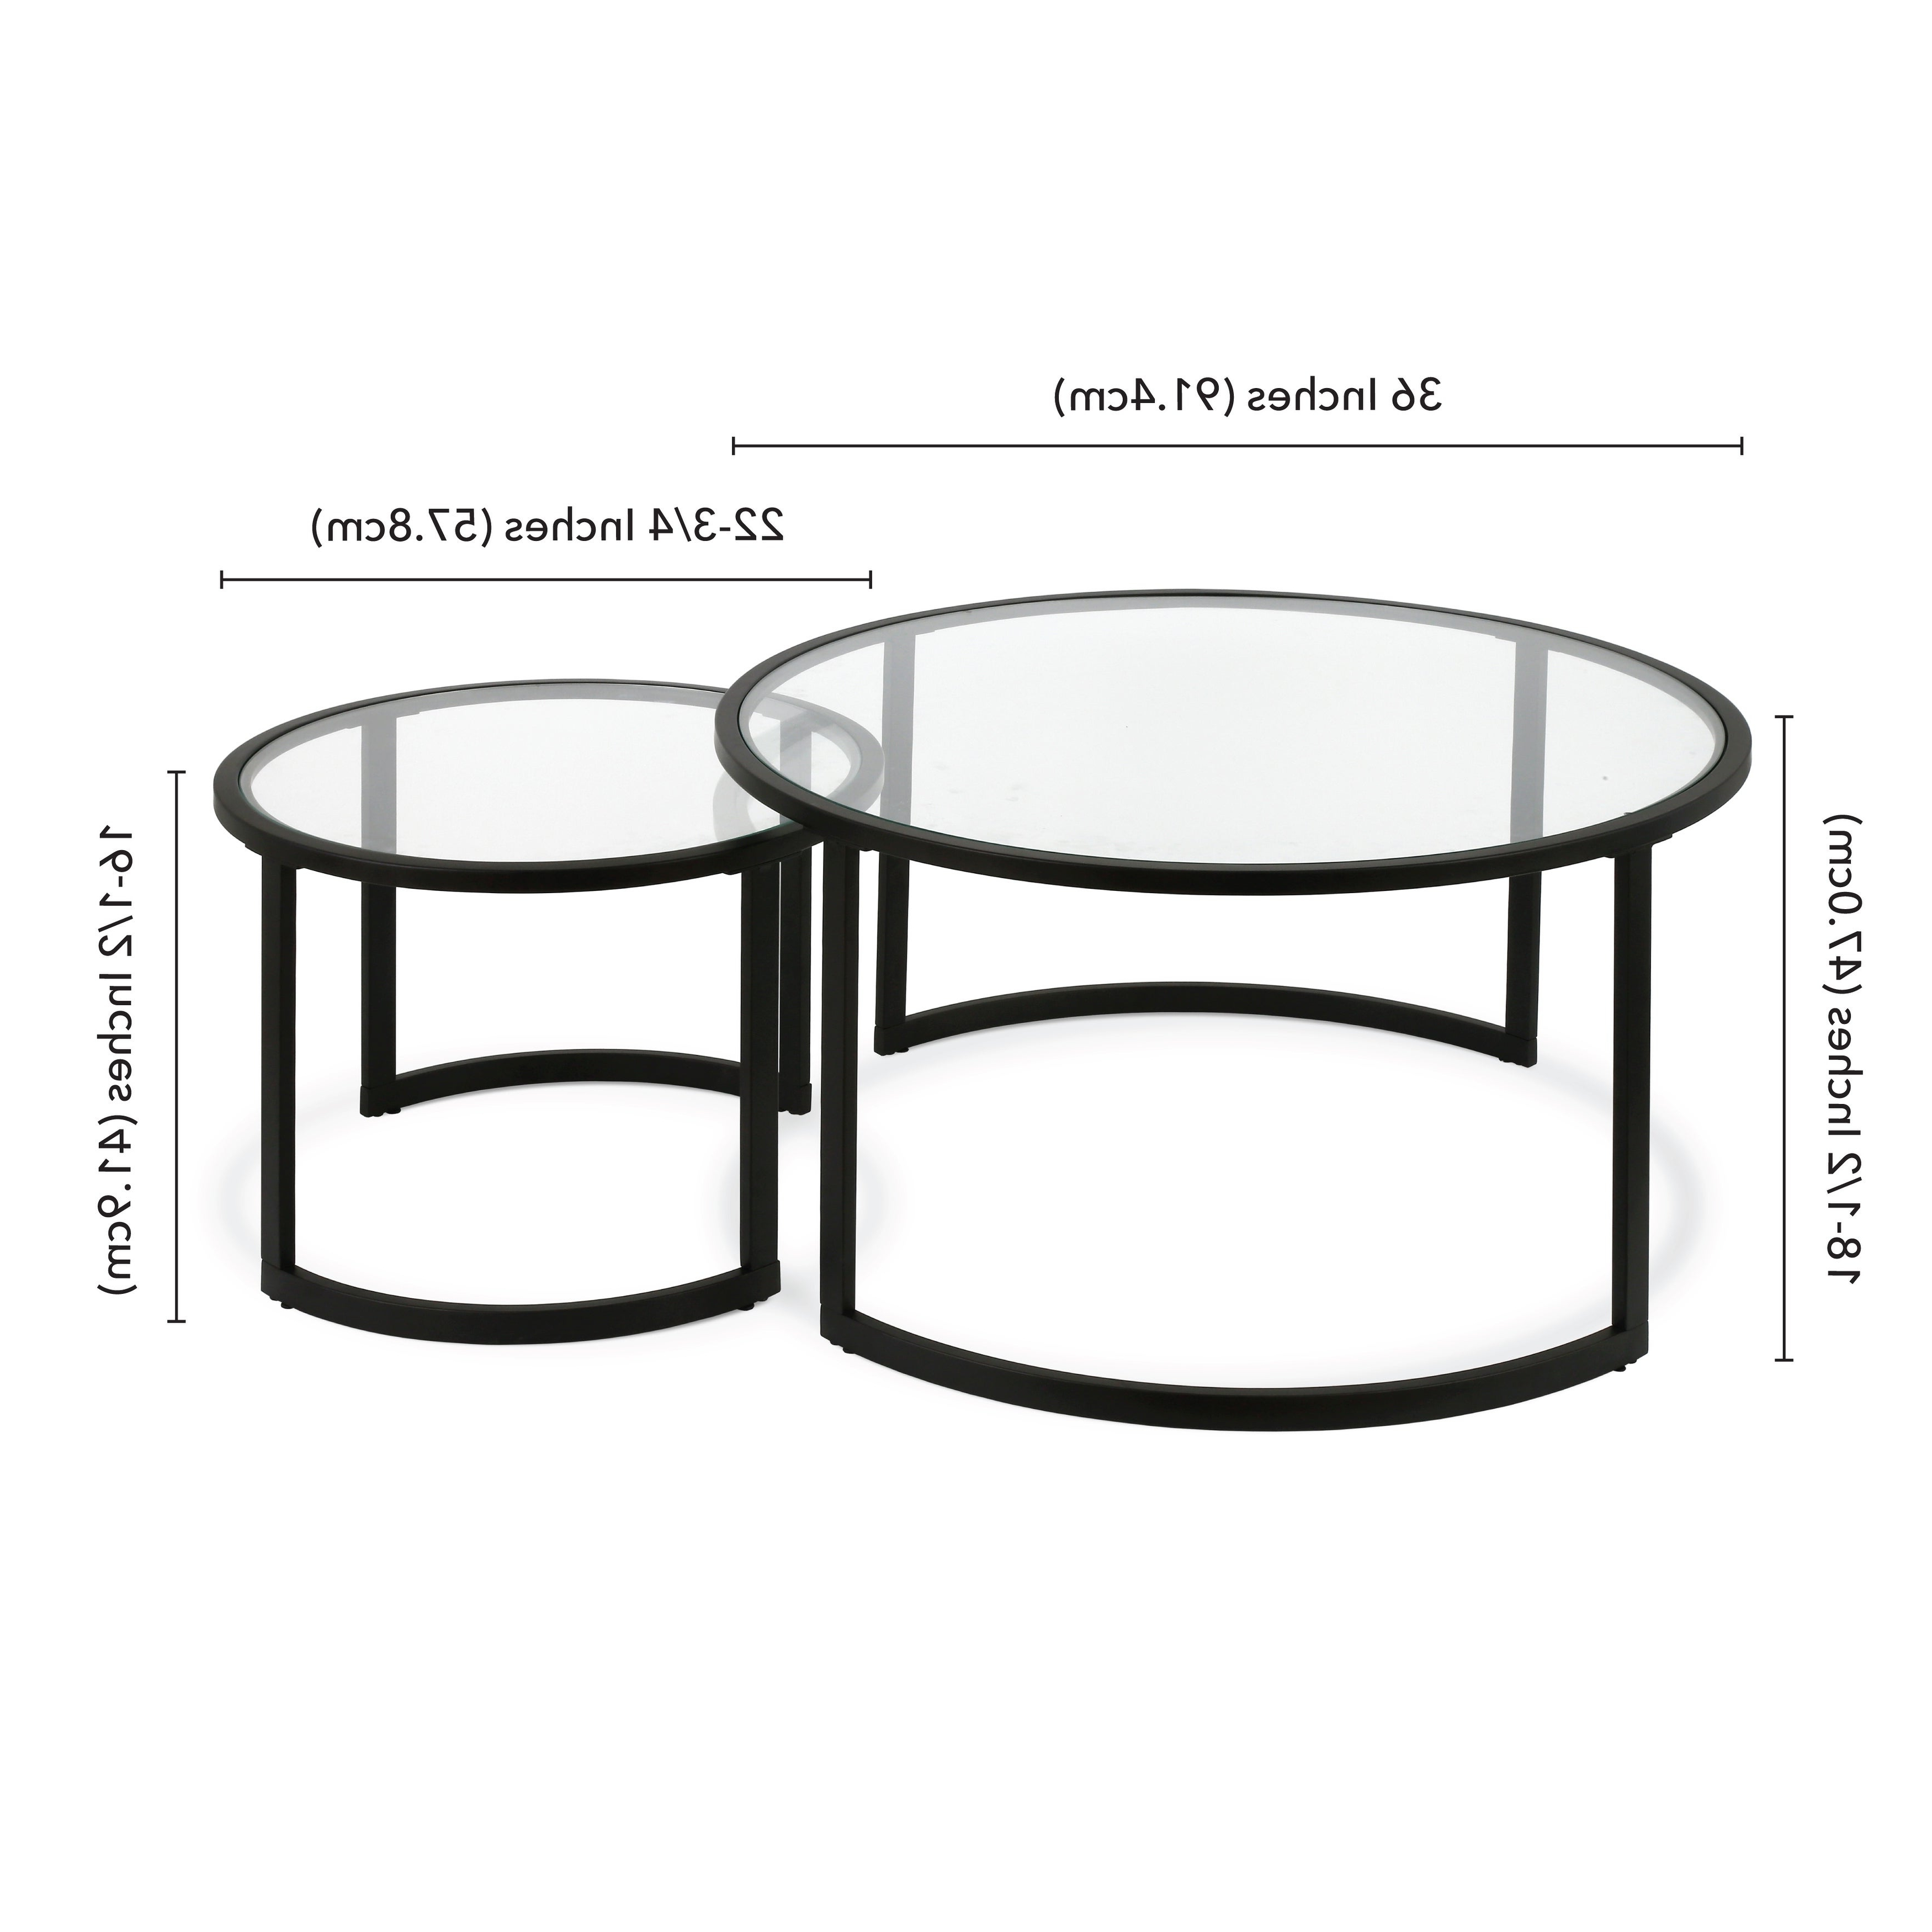 Mitera Round Metal/glass Nesting Coffee Tables Set Of 2 (Optional Finishes) With Best And Newest Mitera Round Metal Glass Nesting Coffee Tables (View 11 of 20)